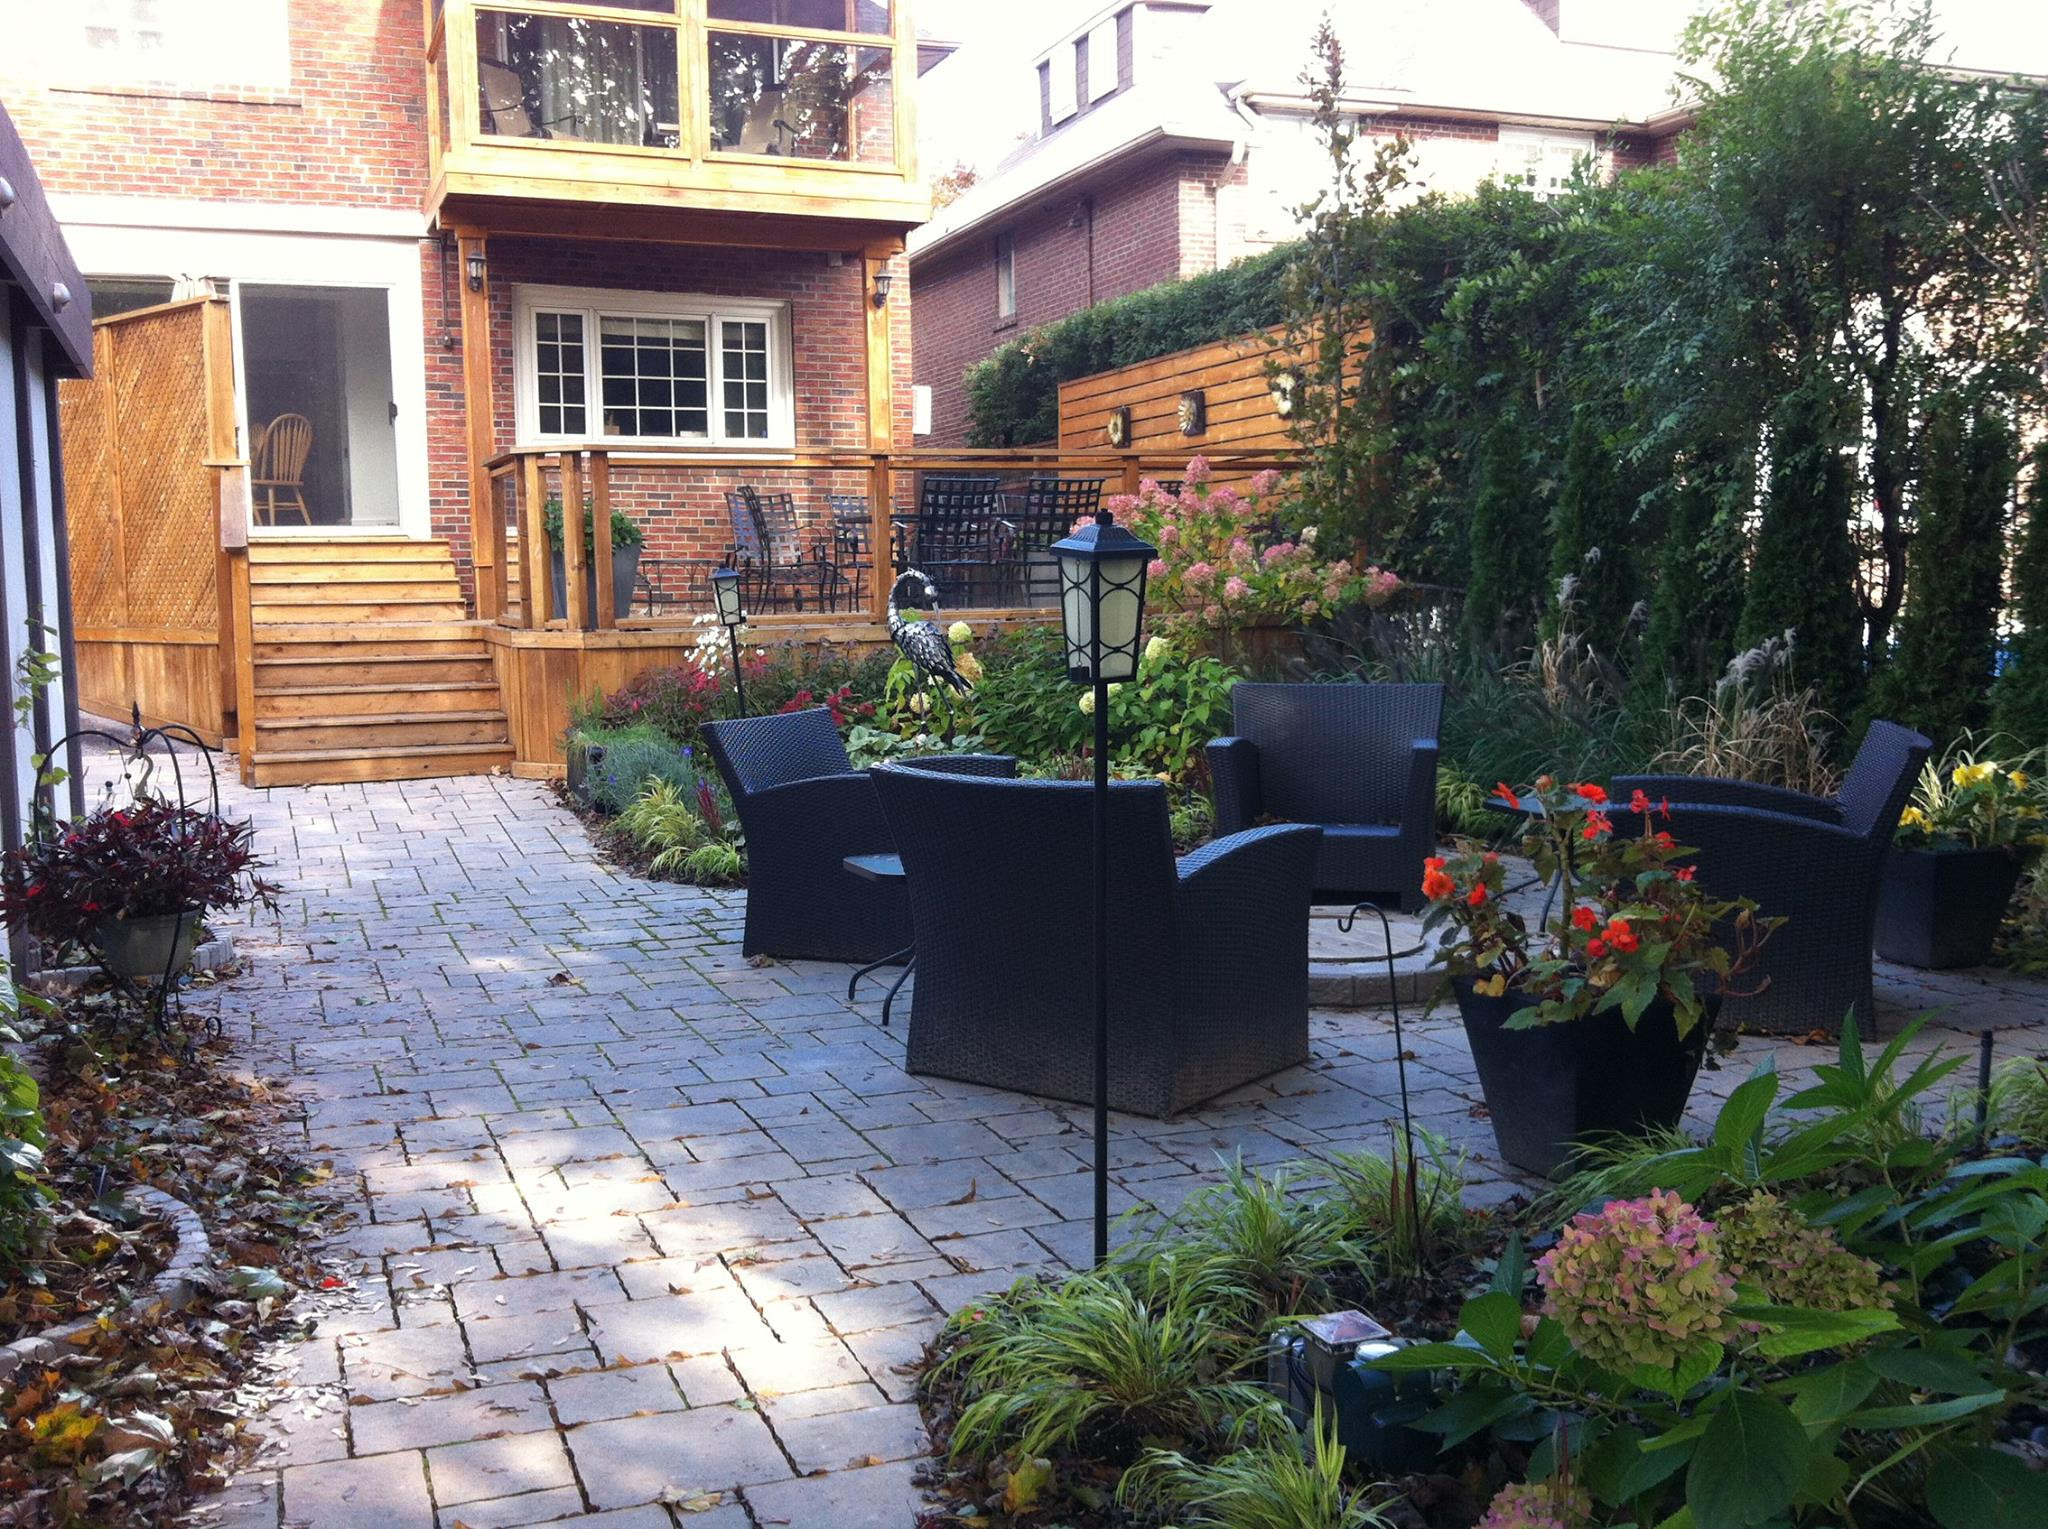 Cozy backyard patio with gas fire pit, water feature, and cedar deck with glass panel railings